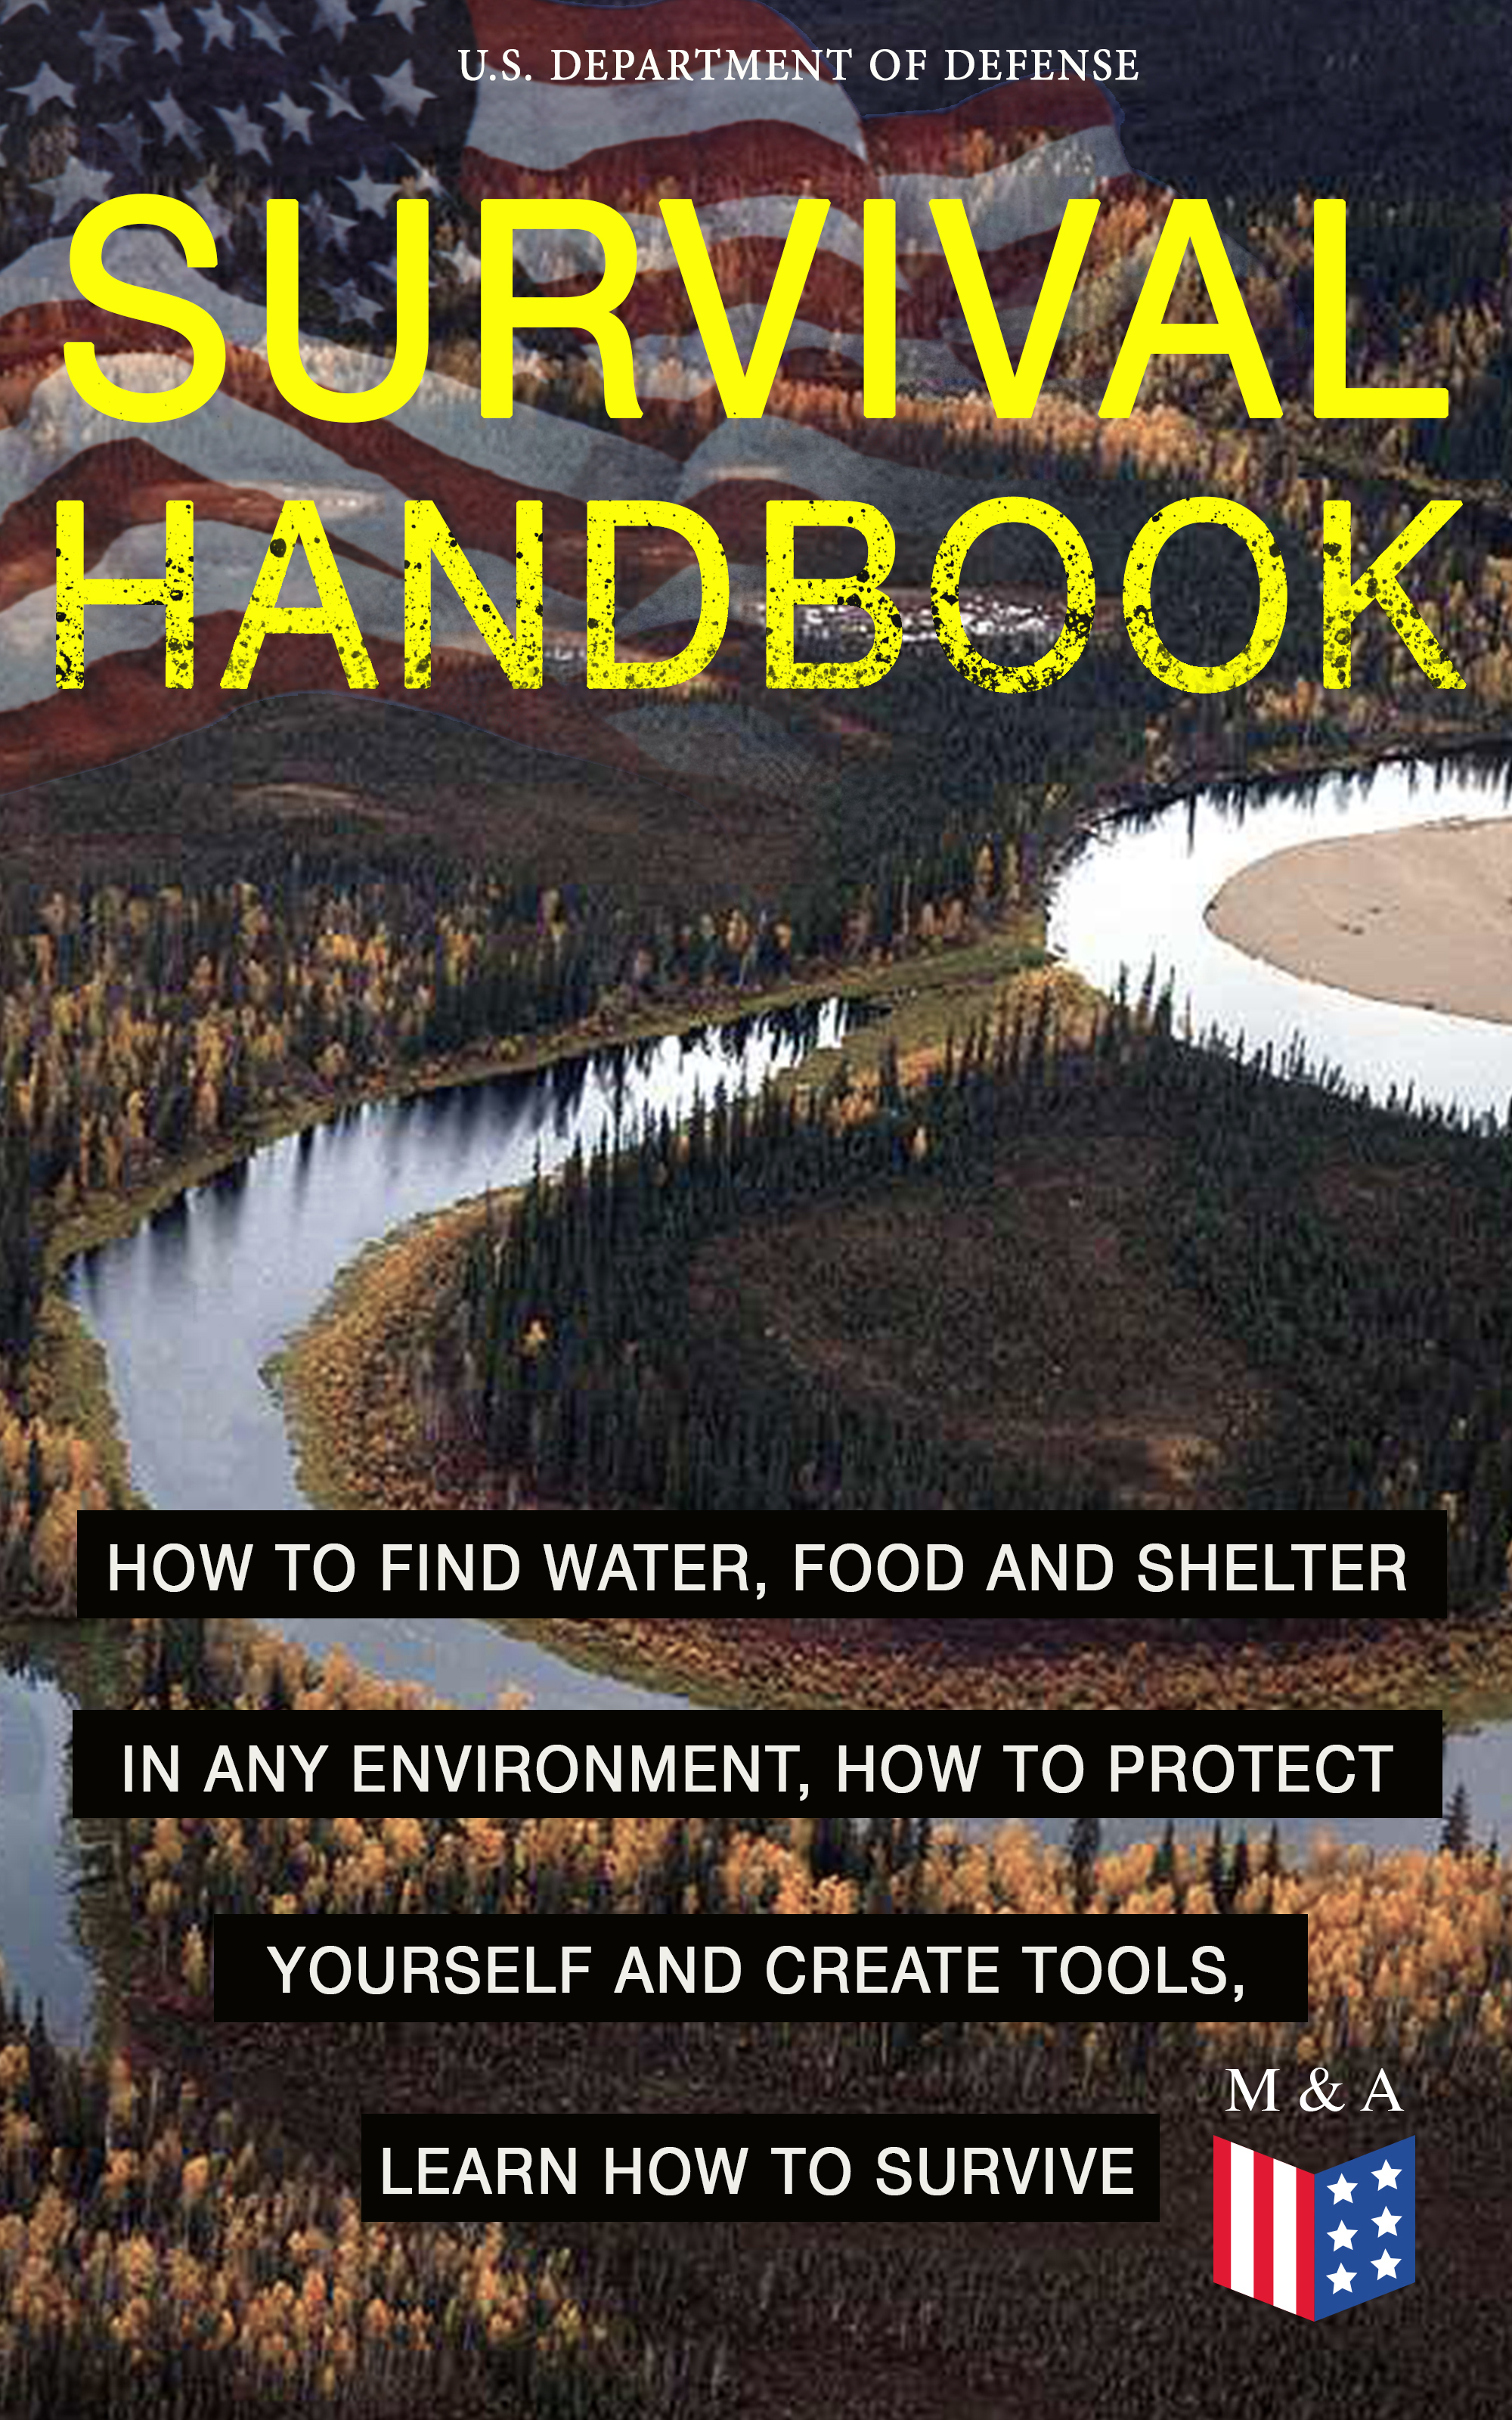 U.S. Department of Defense SURVIVAL HANDBOOK - How to Find Water, Food and Shelter in Any Environment, How to Protect Yourself and Create Tools, Learn How to Survive rustam ksenofontov how to